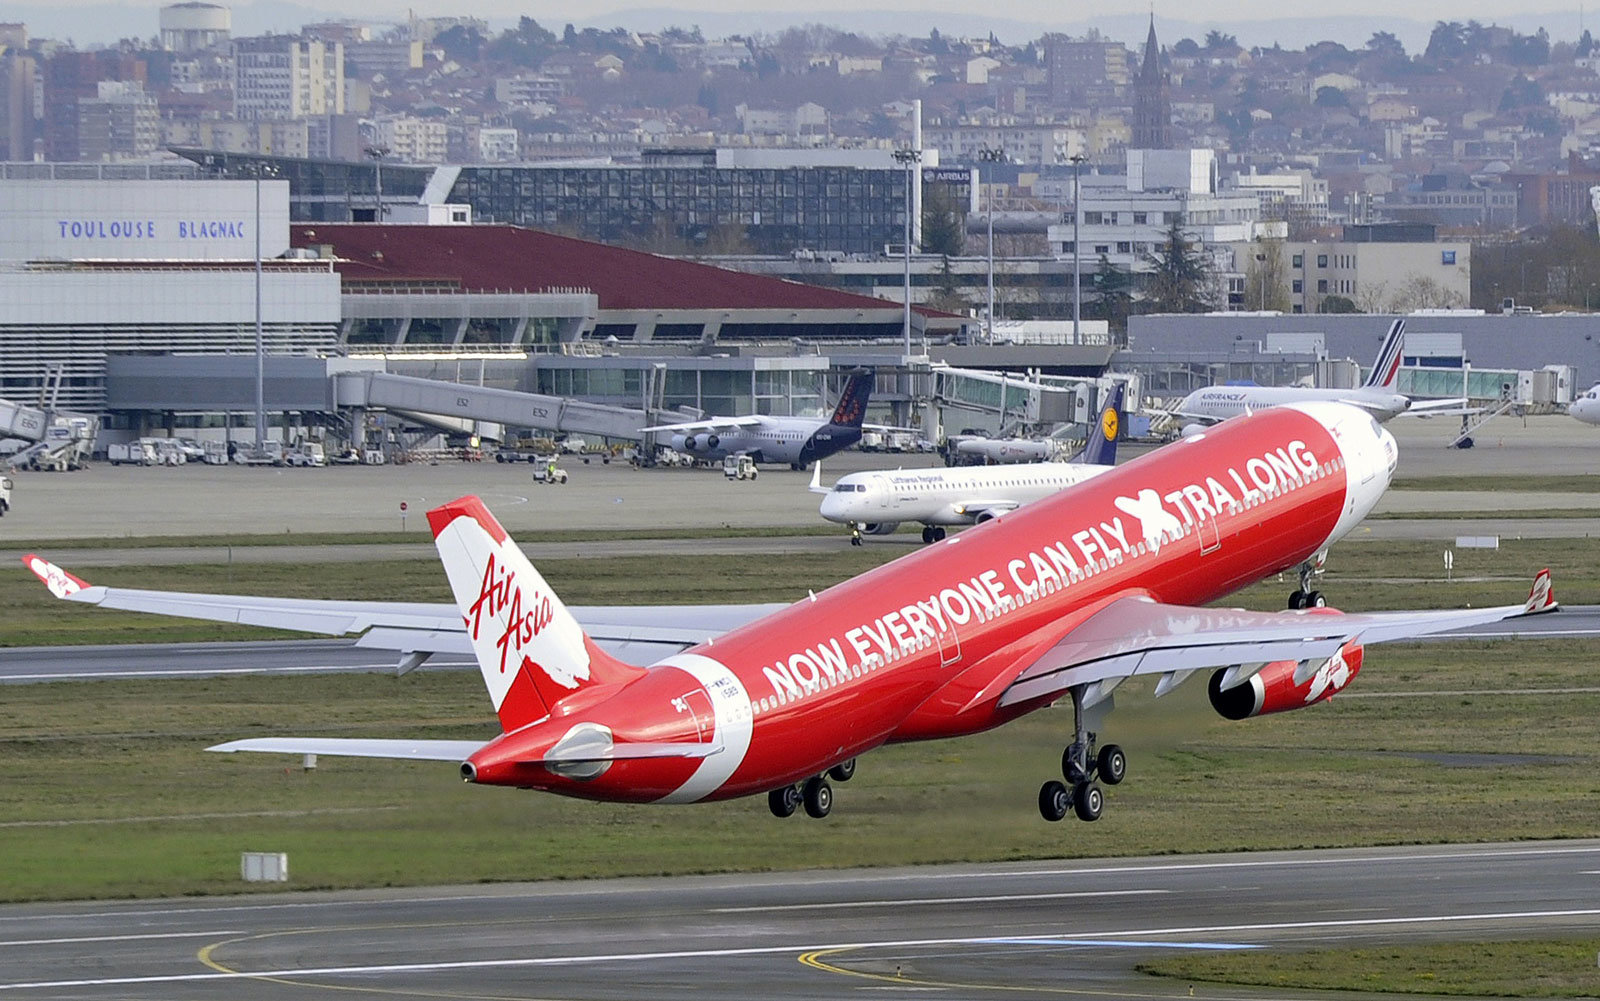 An error caused an AirAsia flight to go to Australia instead of Malaysia.